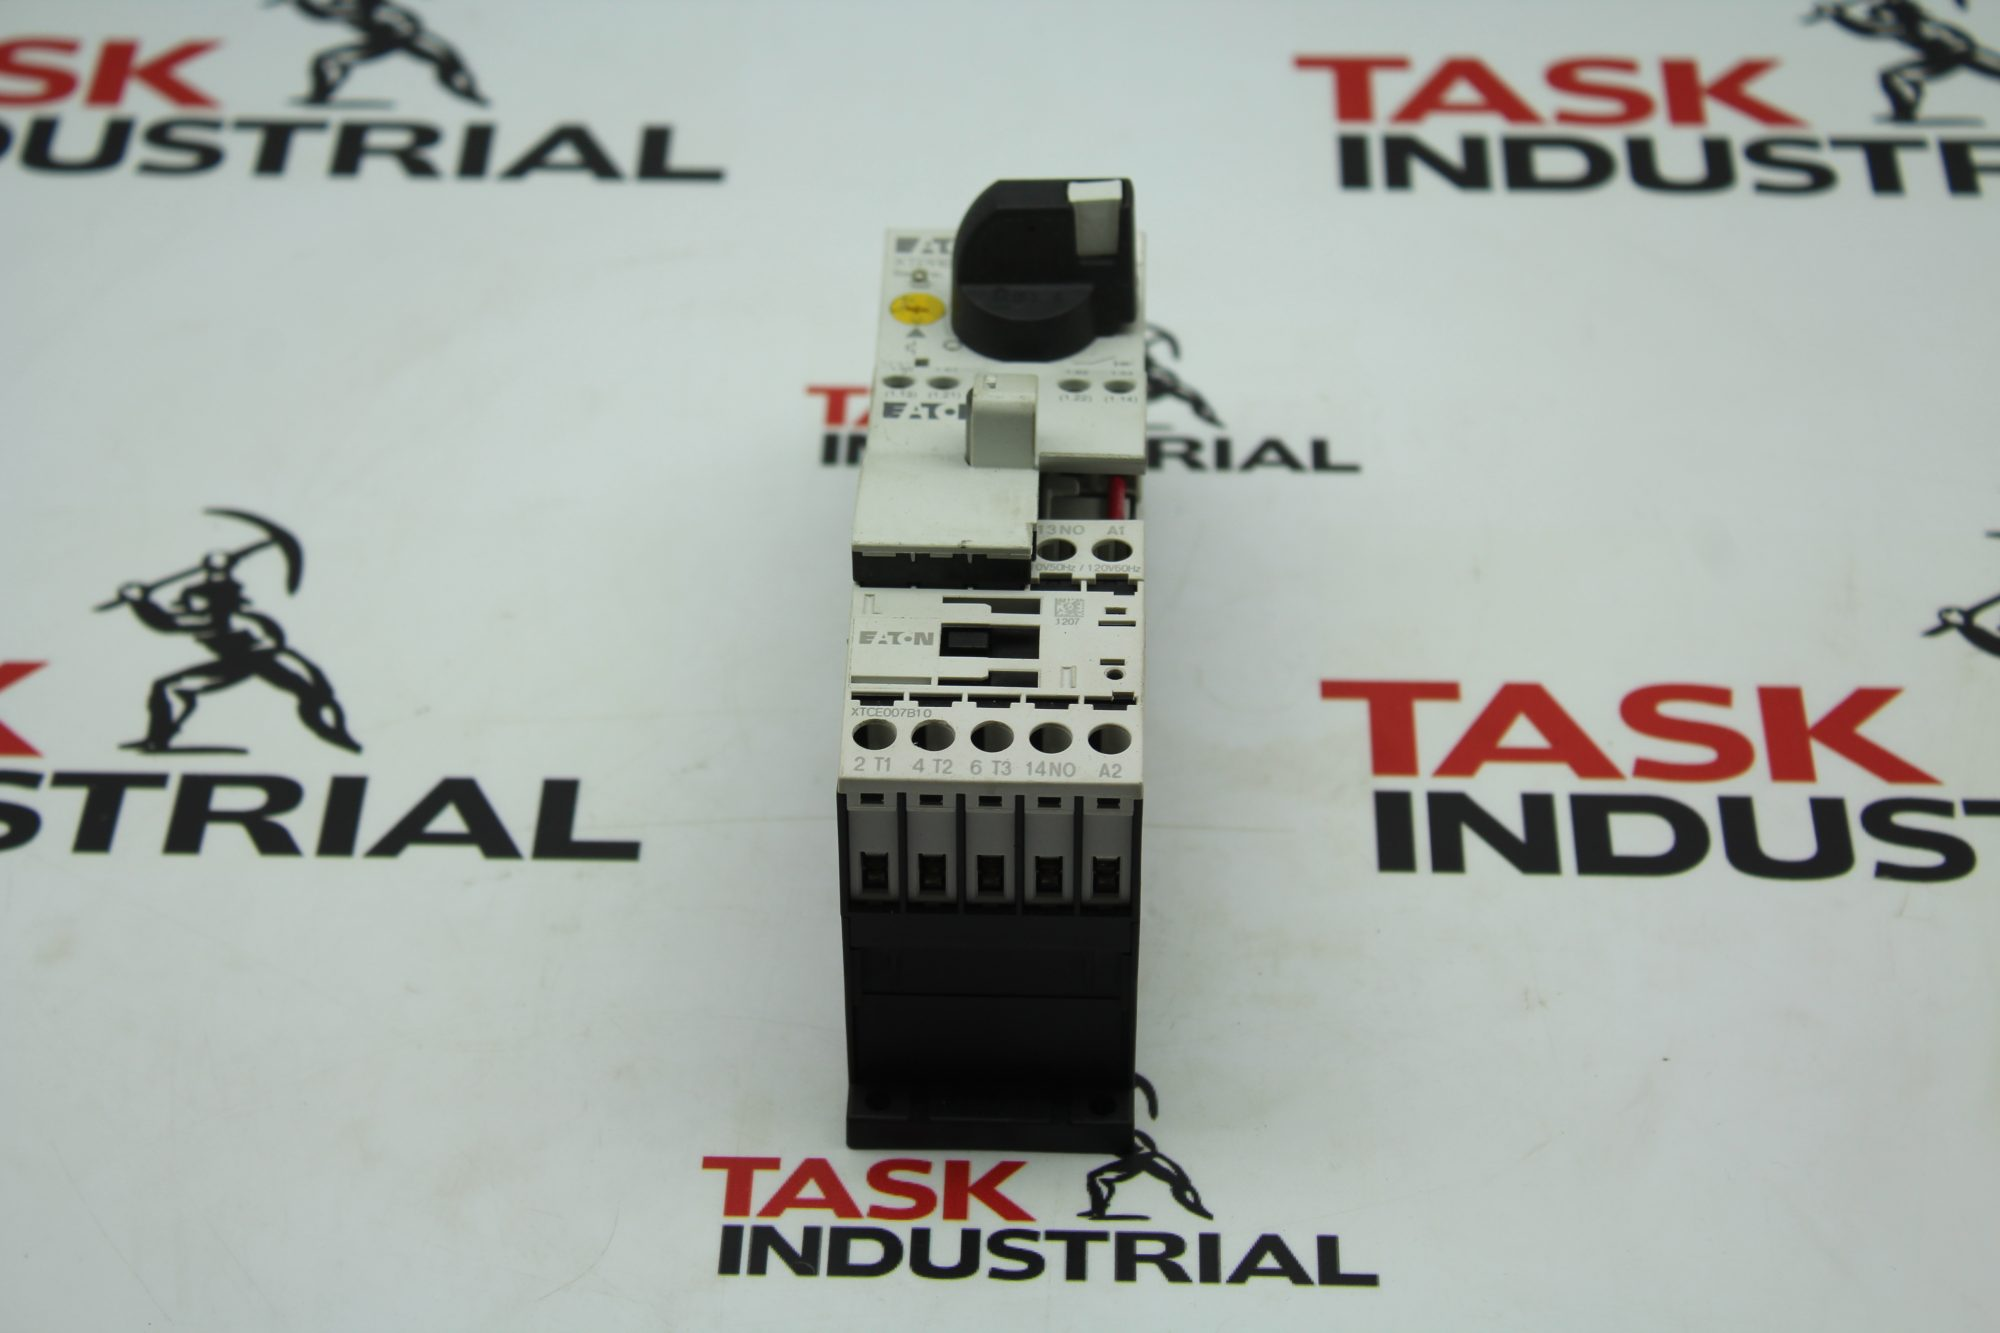 Eaton XTPR6P3BC1 Ser.-No 04 with XTCE007B10